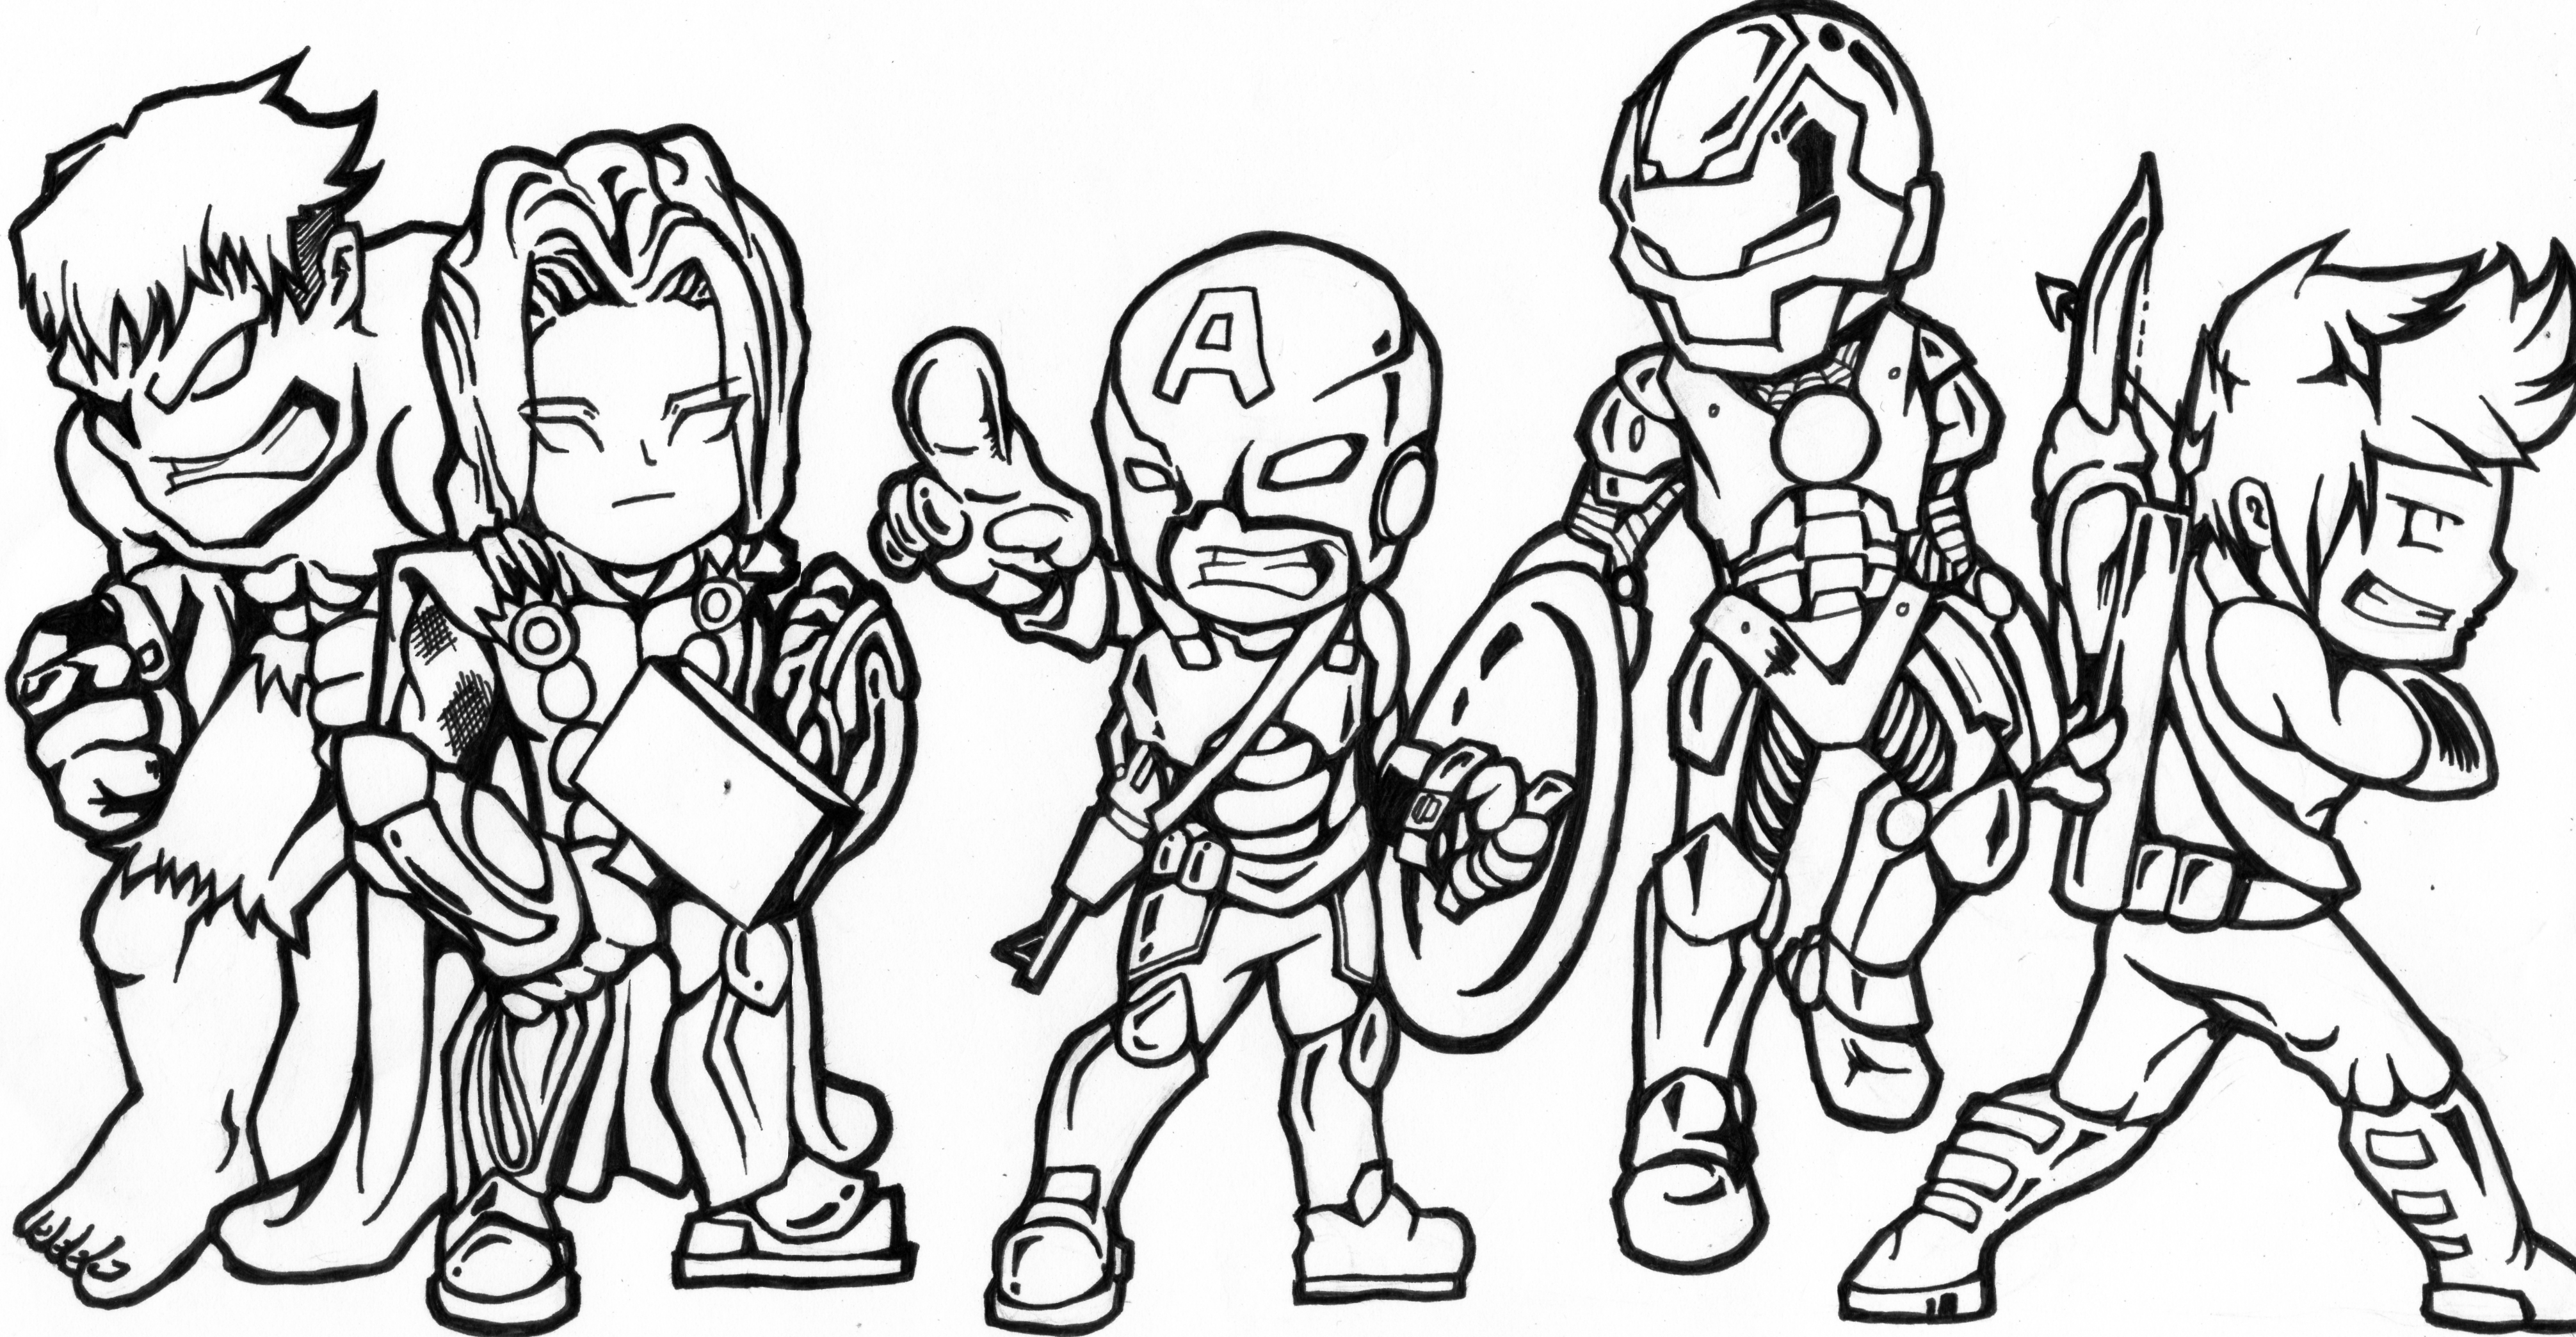 cute avengers coloring pages pin by liliane hashish on cute coloring pages in 2020 avengers pages coloring cute